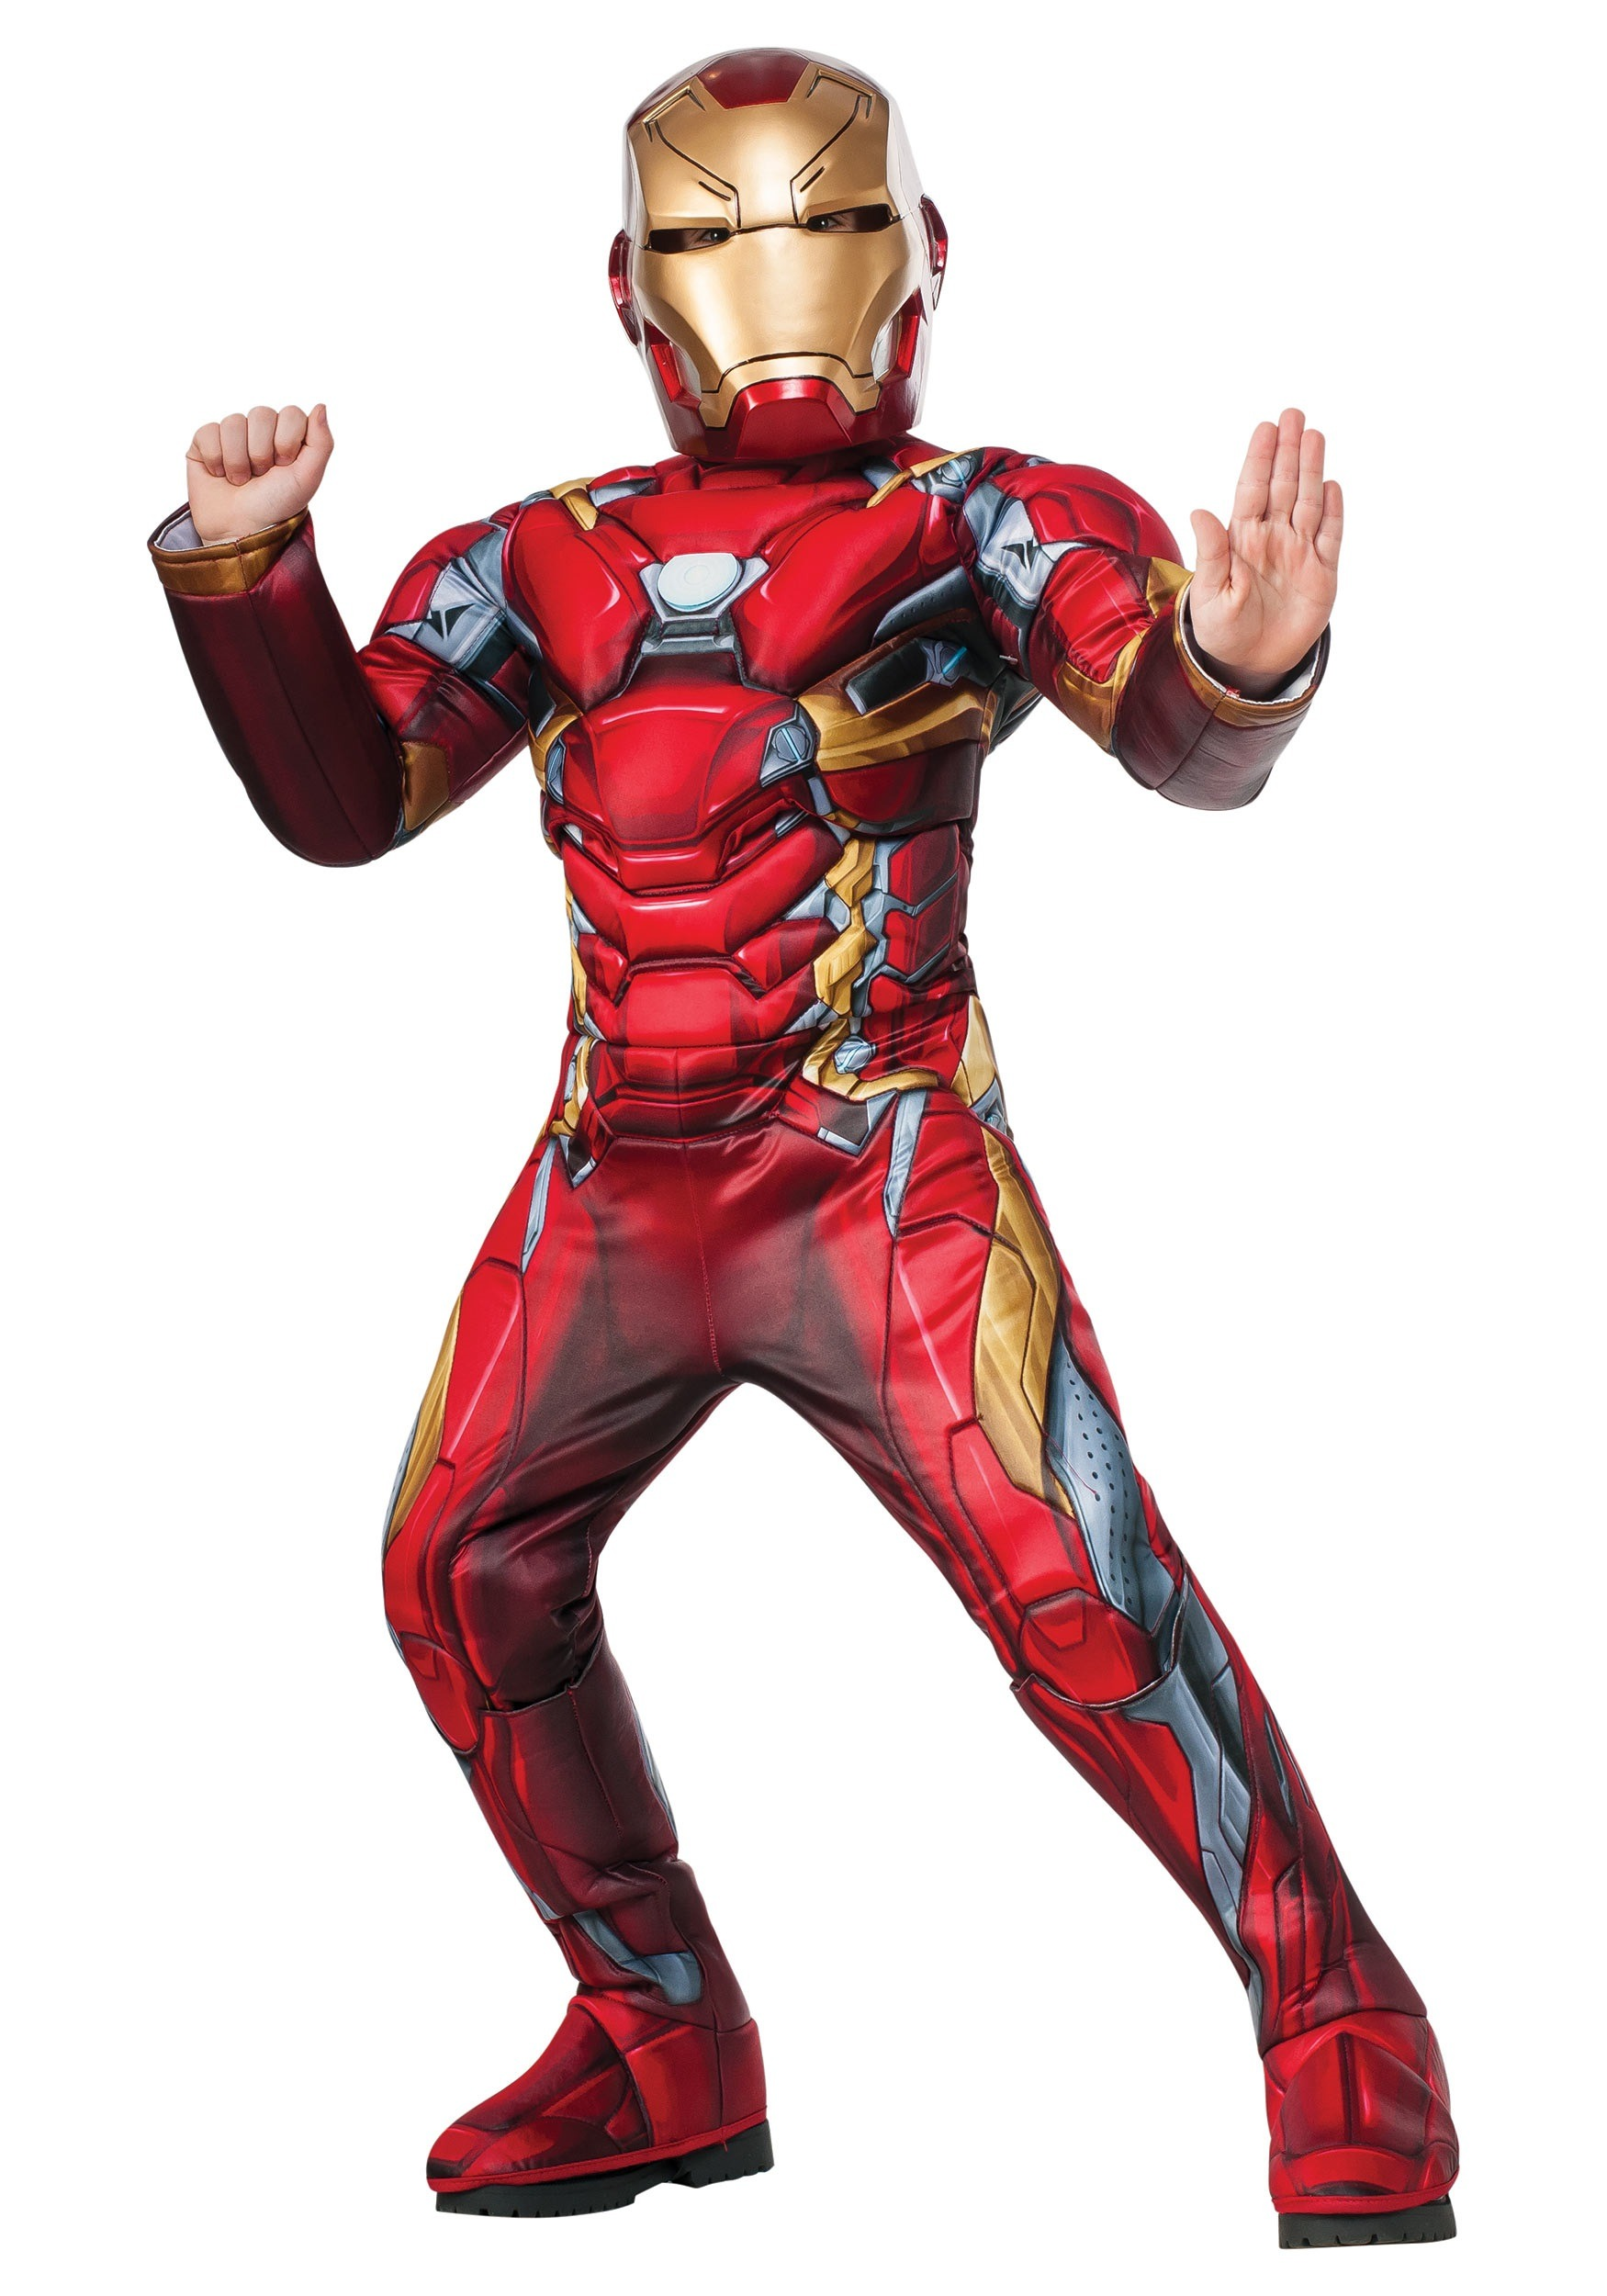 There's a lot more to being Tony Stark than just a cool high-tech suit. Sure, the Iron Man suit IS pretty awesome, but Tony has style, swag and a whole encyclopedia of superhero moves to go along with it!